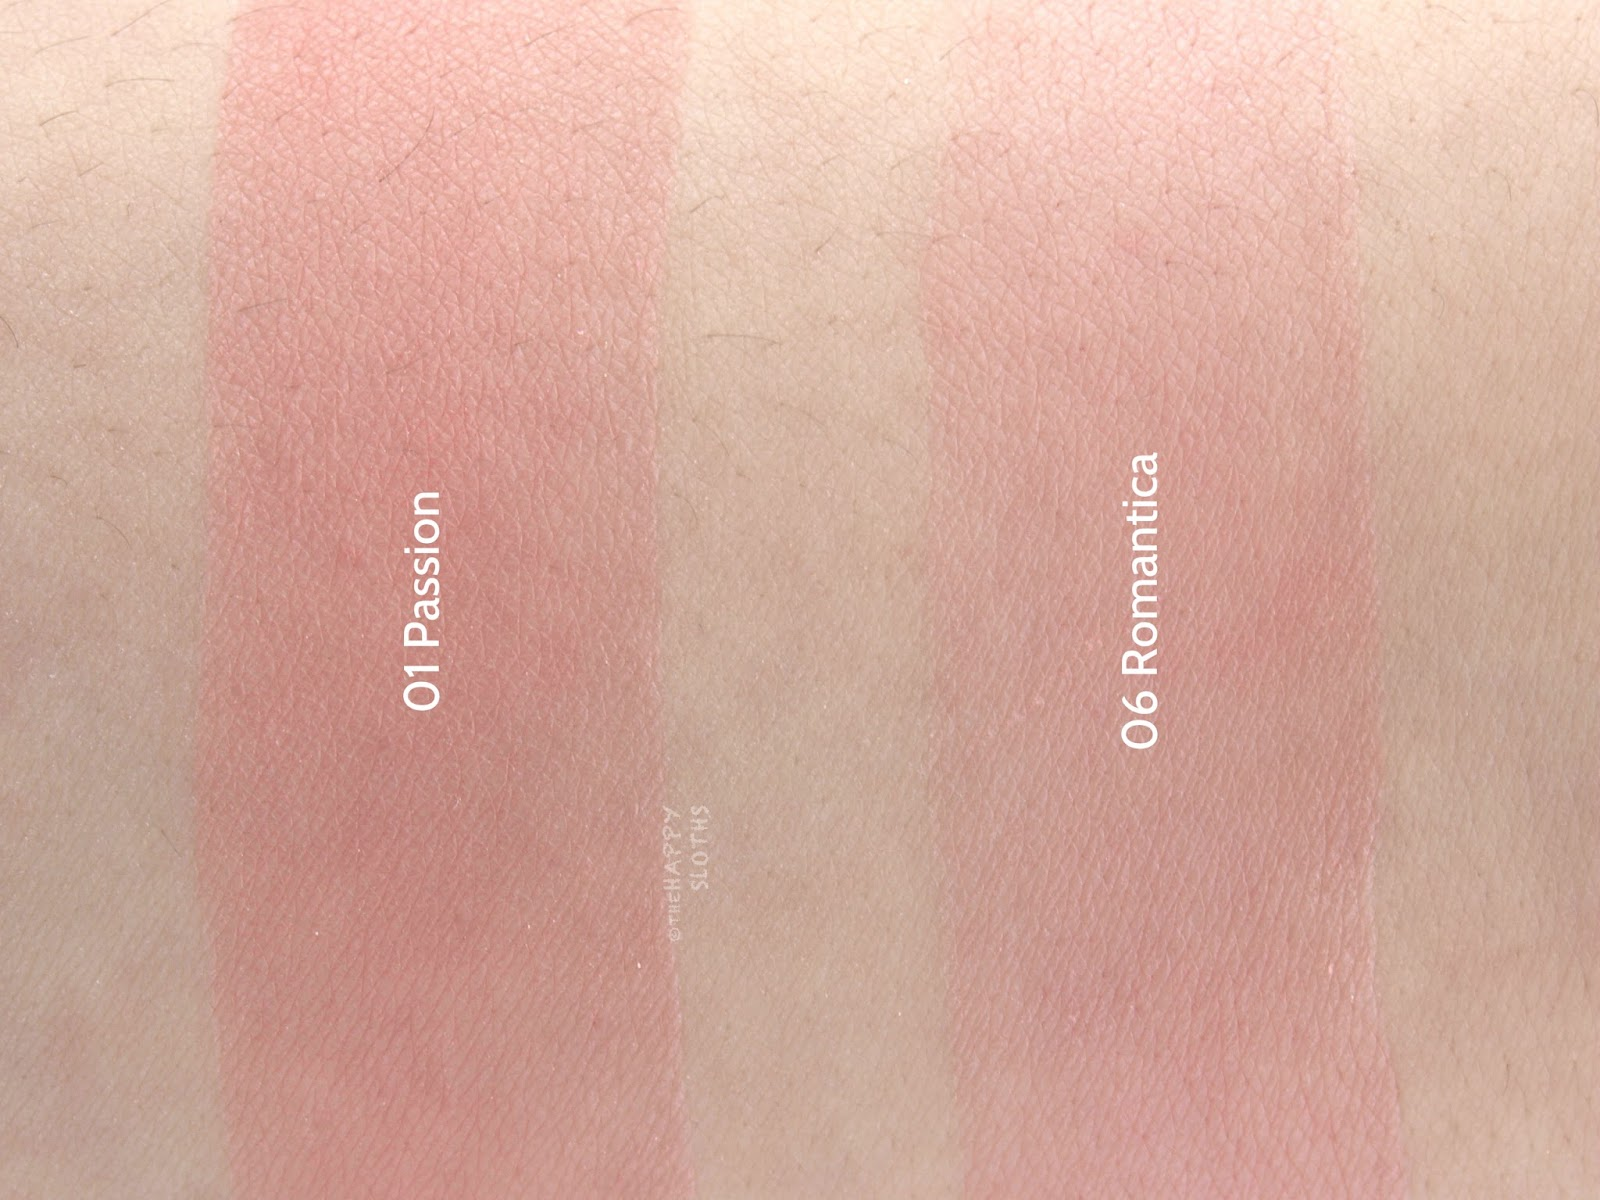 "Givenchy Prisme Blush Highlight & Structure Powder Blush Duo ""01 Passion"" & ""06 Romantica"": Review and Swatches"